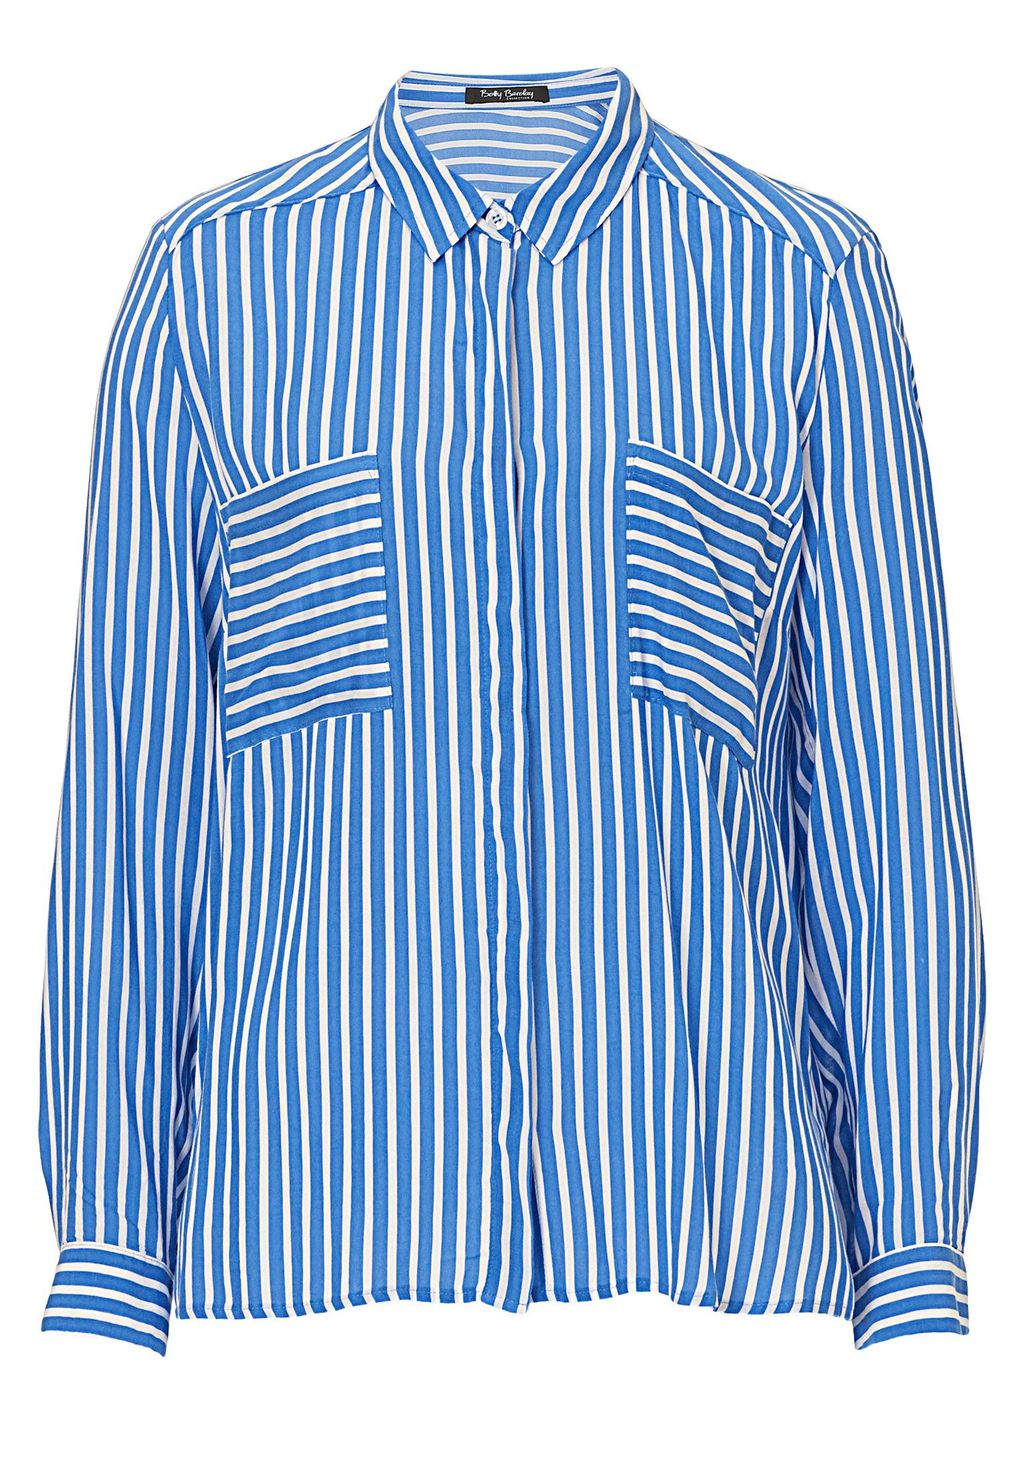 Striped Shirt, Blue - neckline: shirt collar/peter pan/zip with opening; pattern: vertical stripes; style: shirt; bust detail: pocket detail at bust; secondary colour: white; predominant colour: diva blue; occasions: casual, creative work; length: standard; fibres: viscose/rayon - 100%; fit: loose; sleeve length: long sleeve; sleeve style: standard; pattern type: fabric; texture group: other - light to midweight; season: s/s 2016; wardrobe: highlight